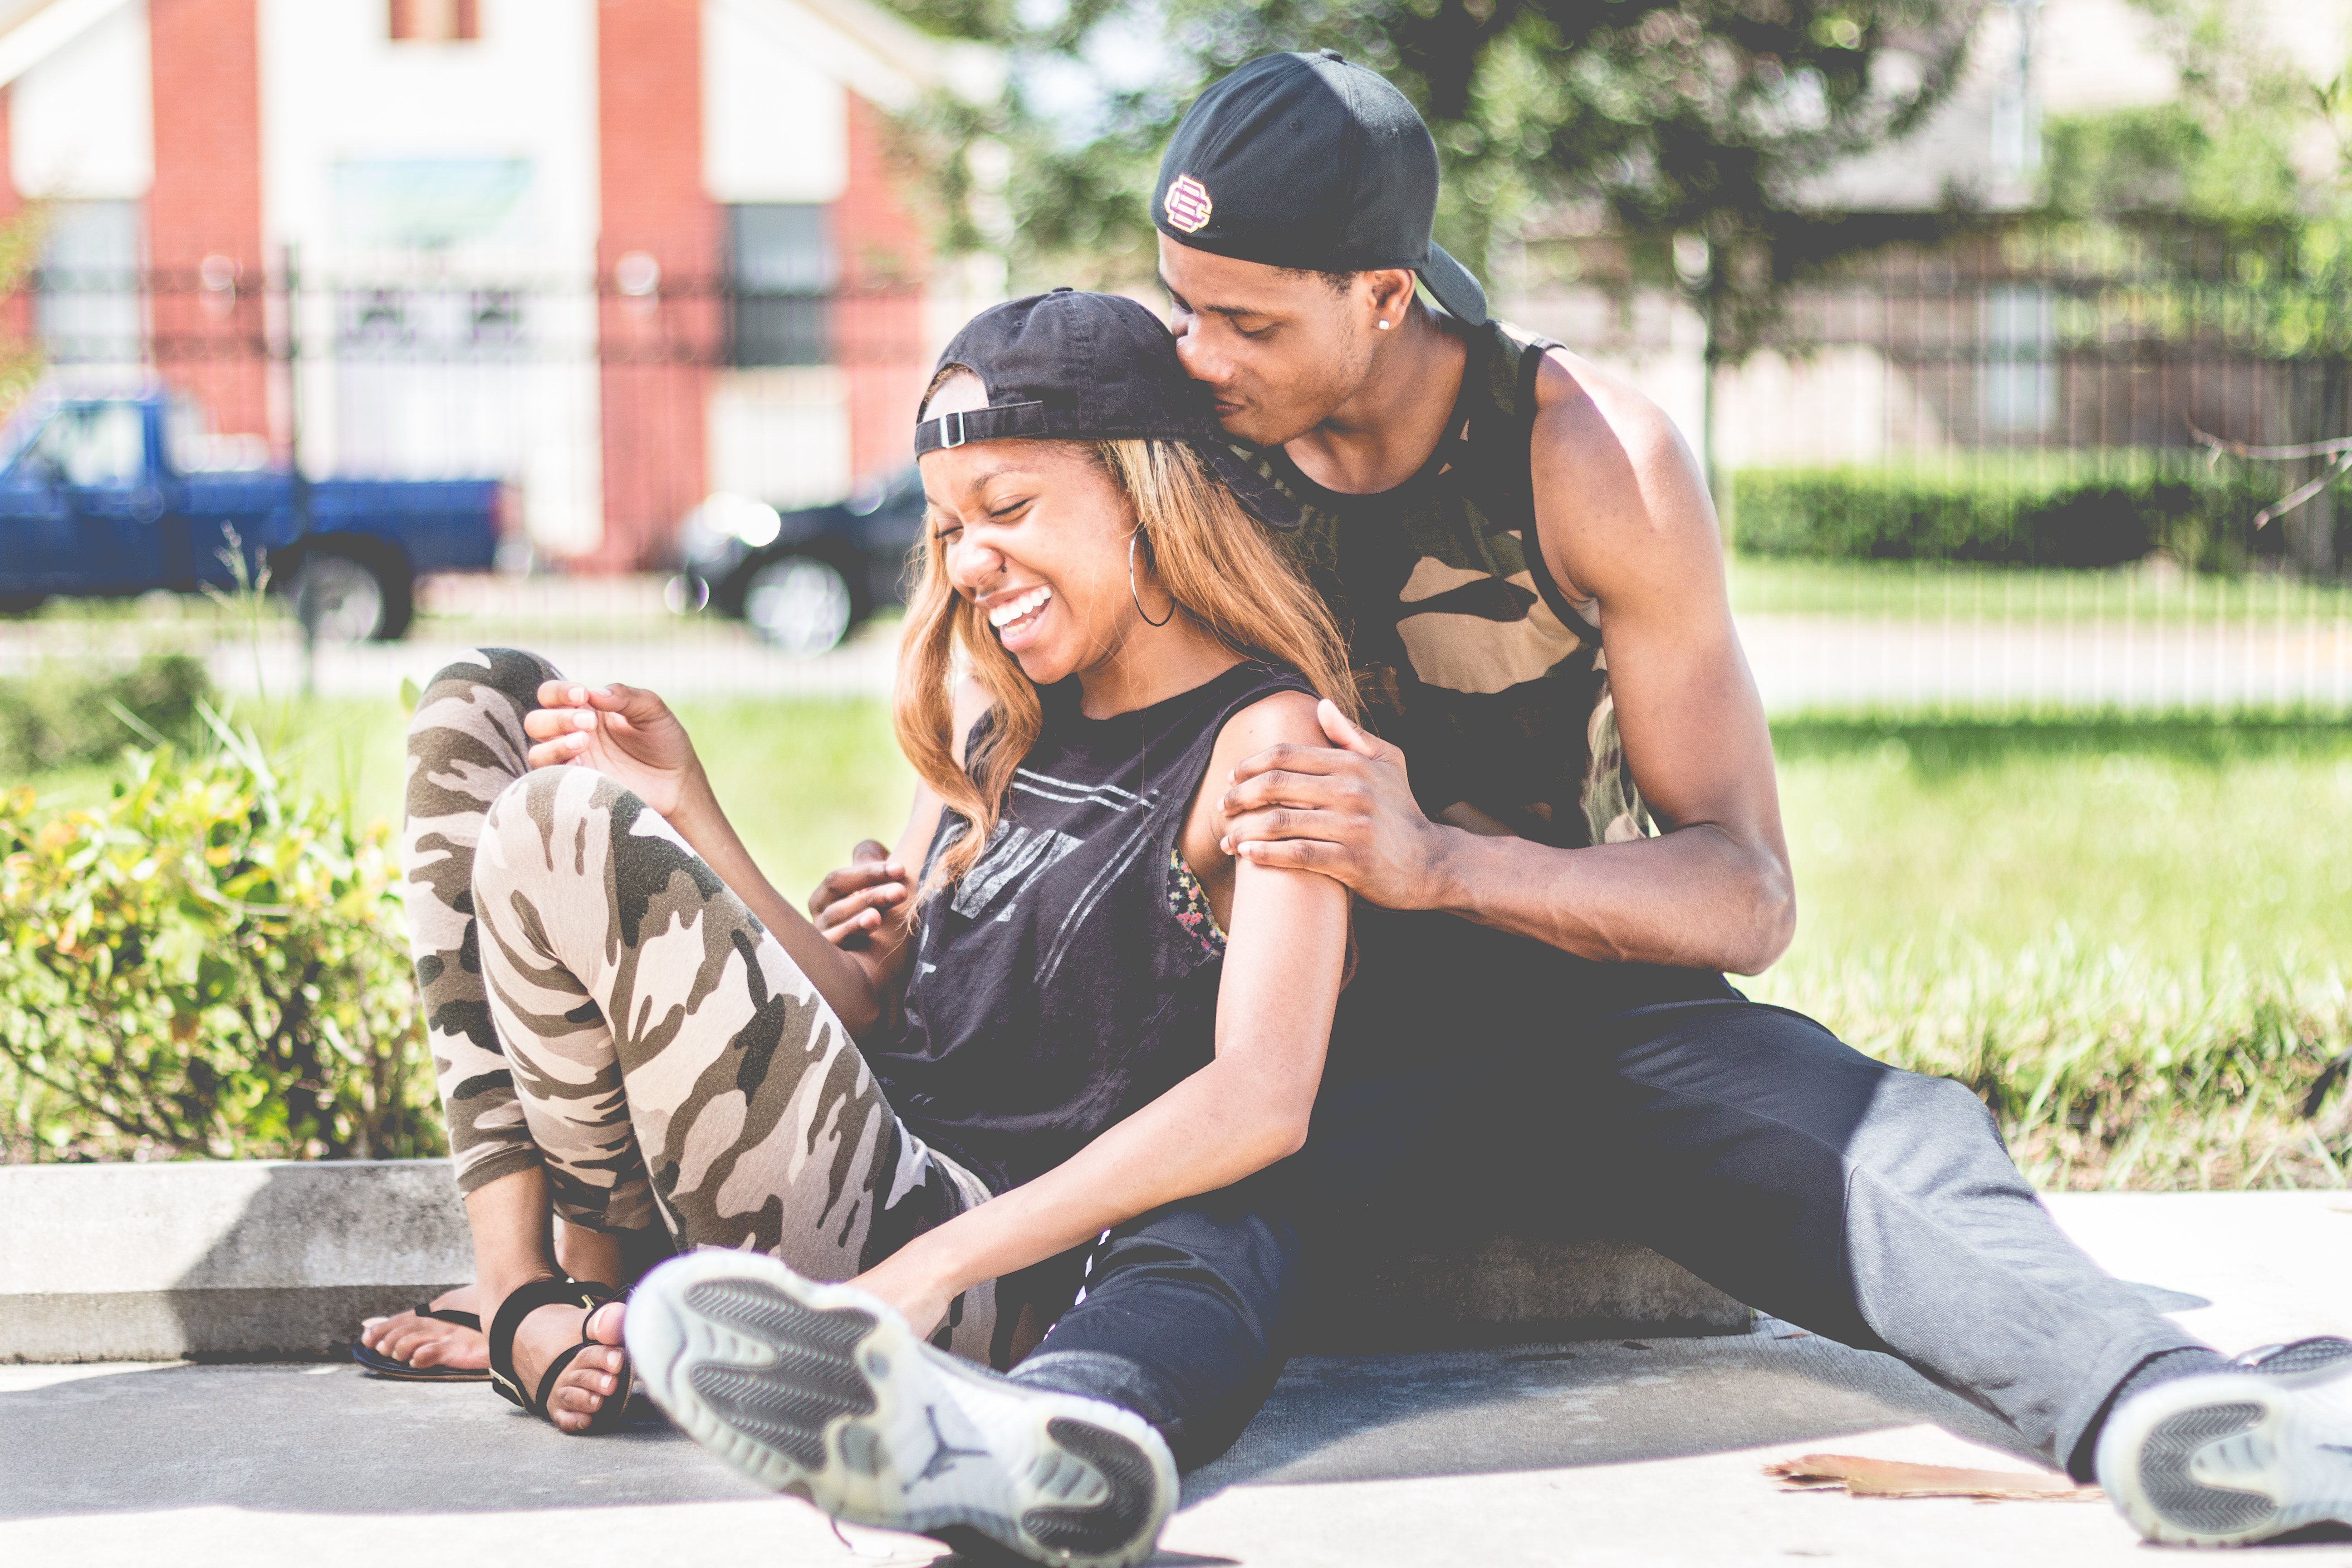 Relationships: Why Bringing Out the Worst Could Be for the Best